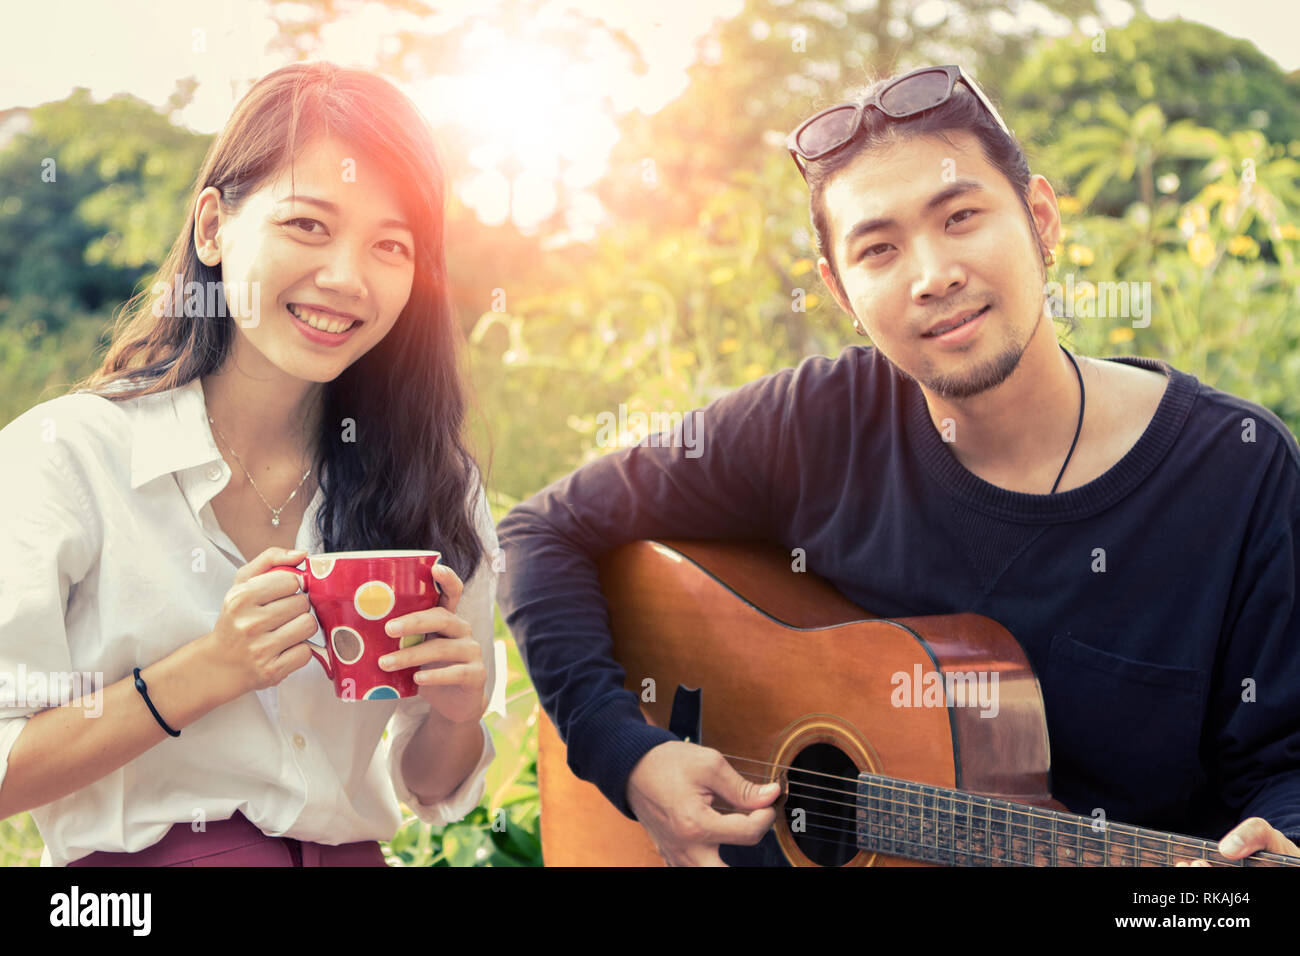 asian younger man and woman playing guitar with happiness emotion - Stock Image